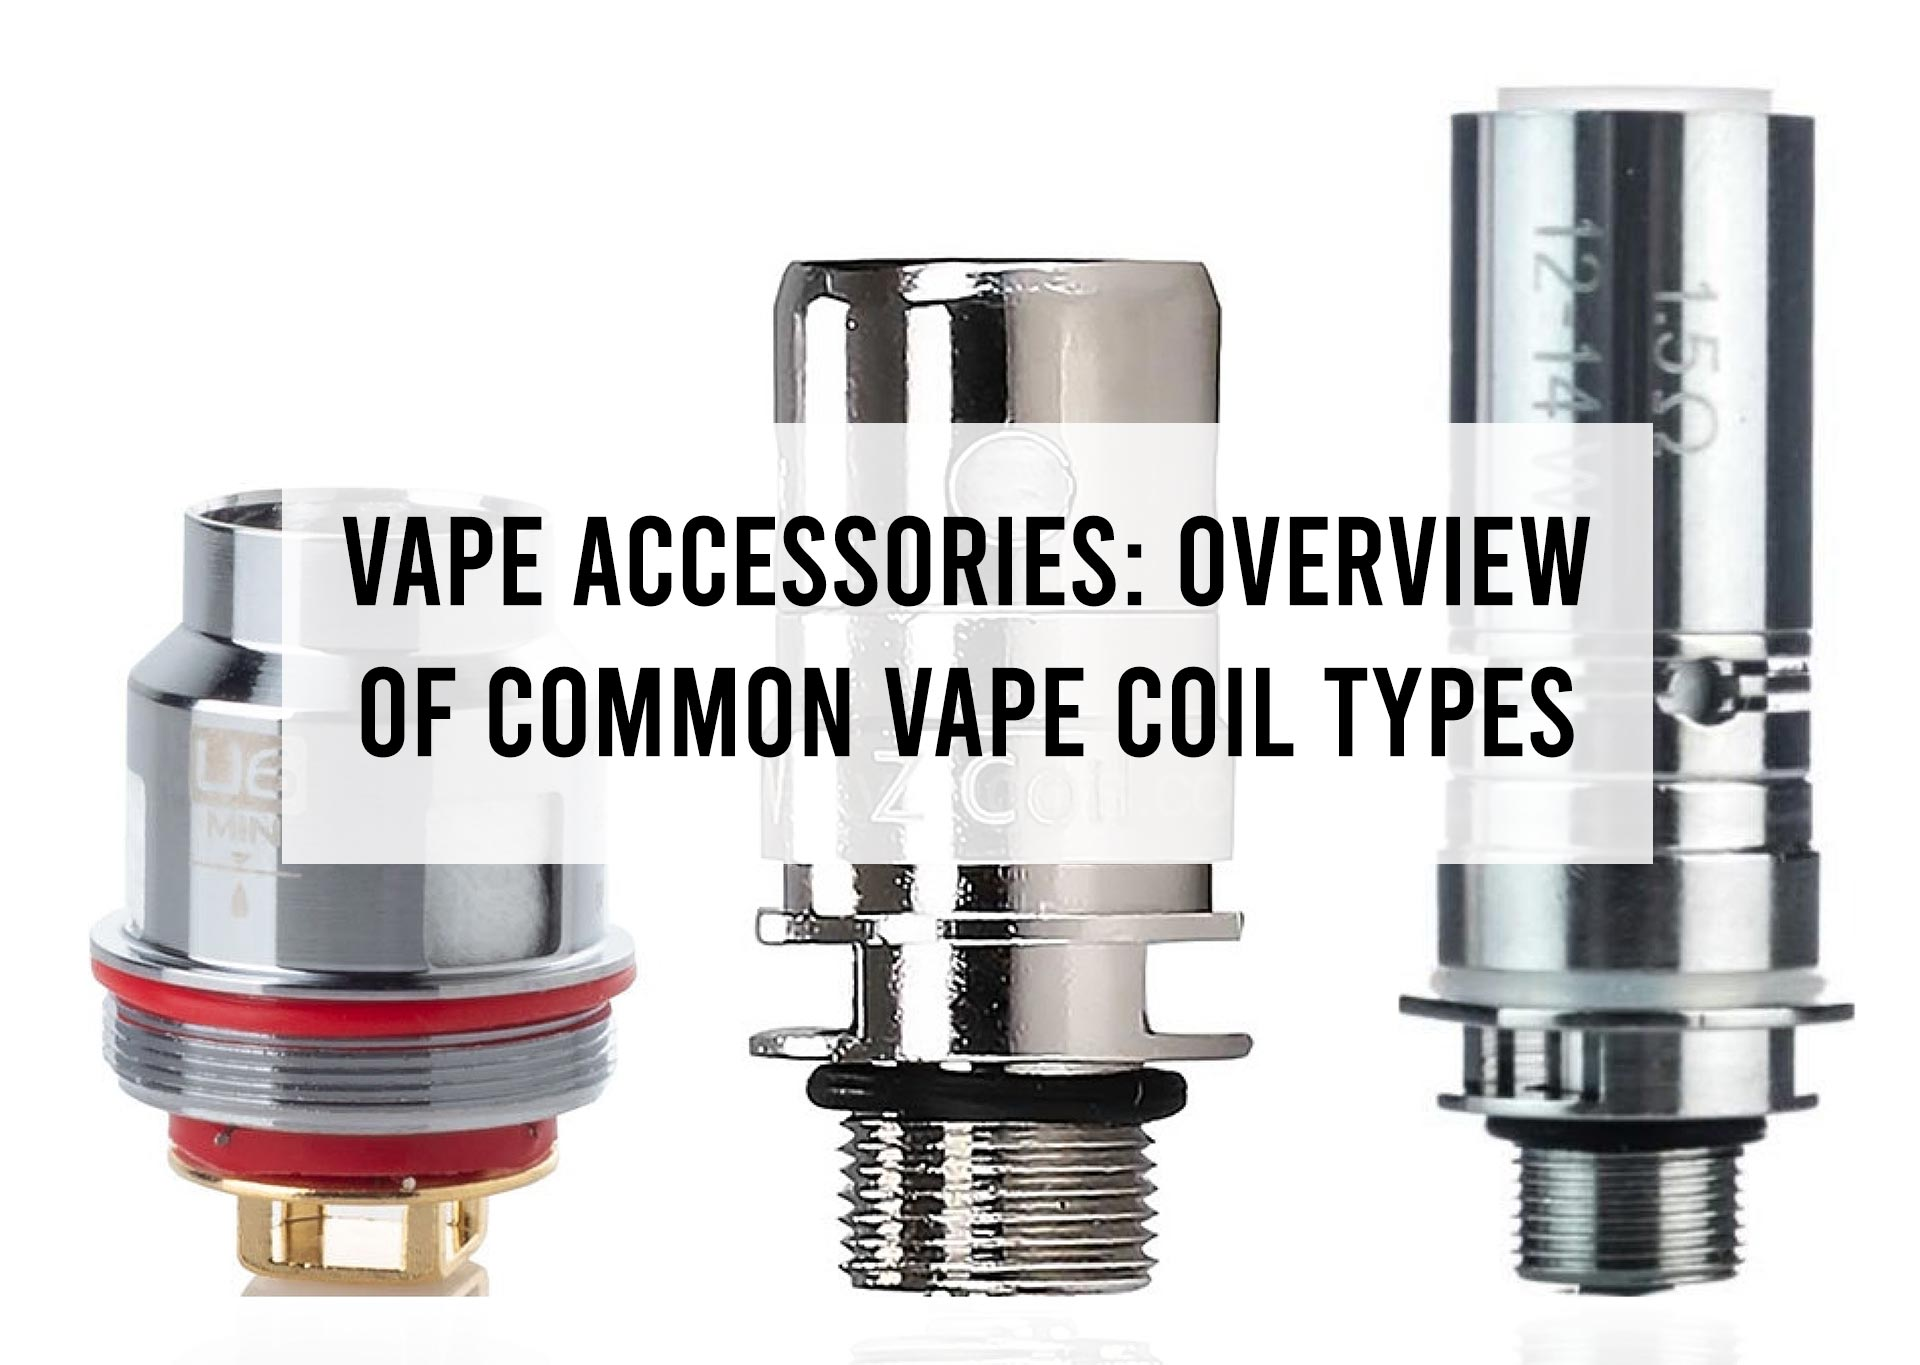 Vape-Accessories--Overview-of-Common-Vape-Coil-Types